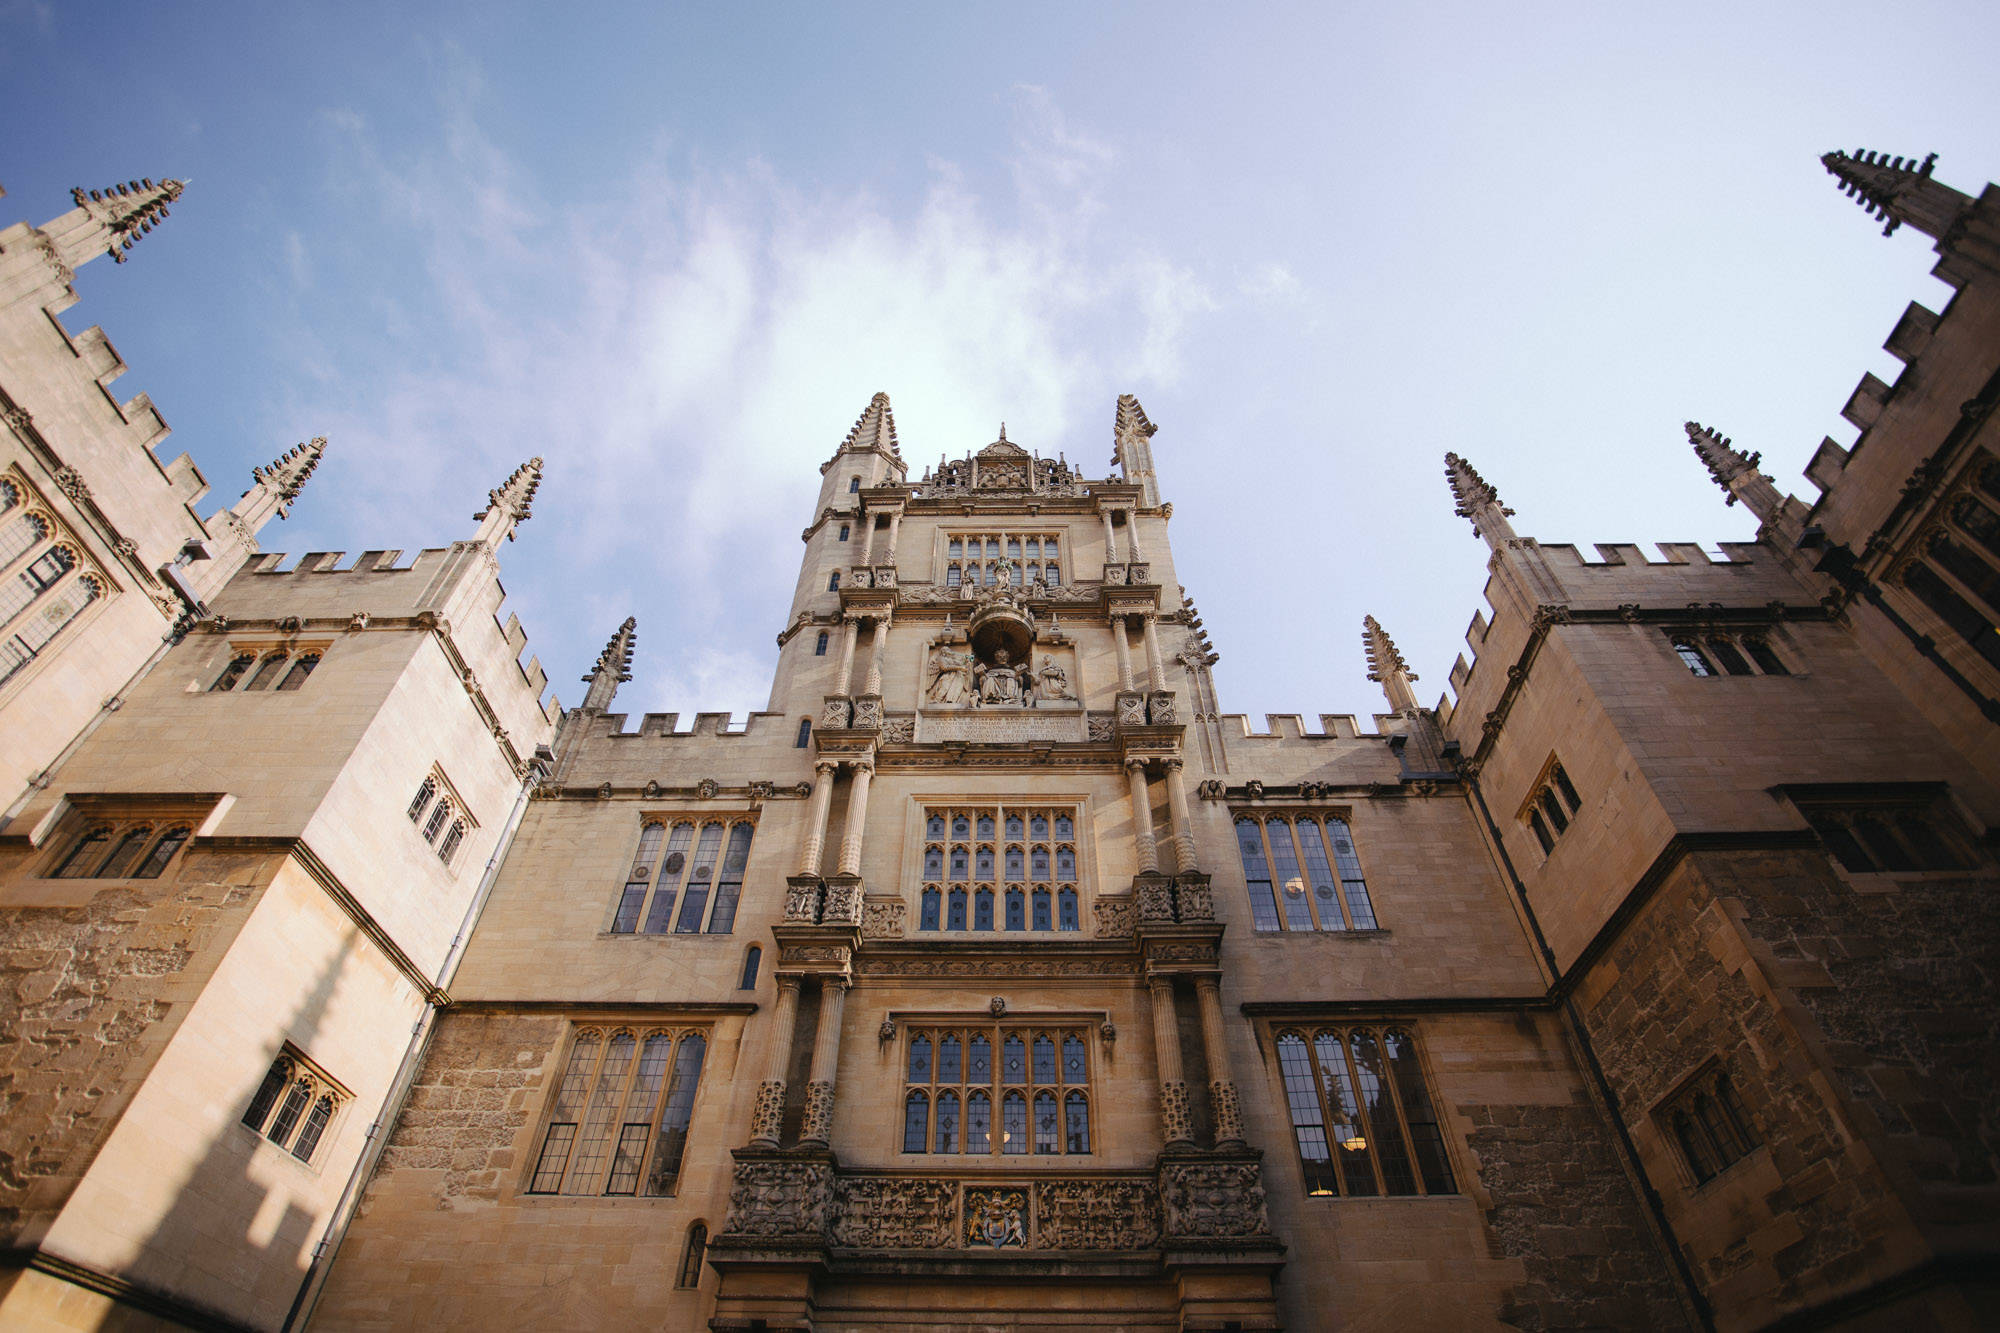 oxford harry potter filming location